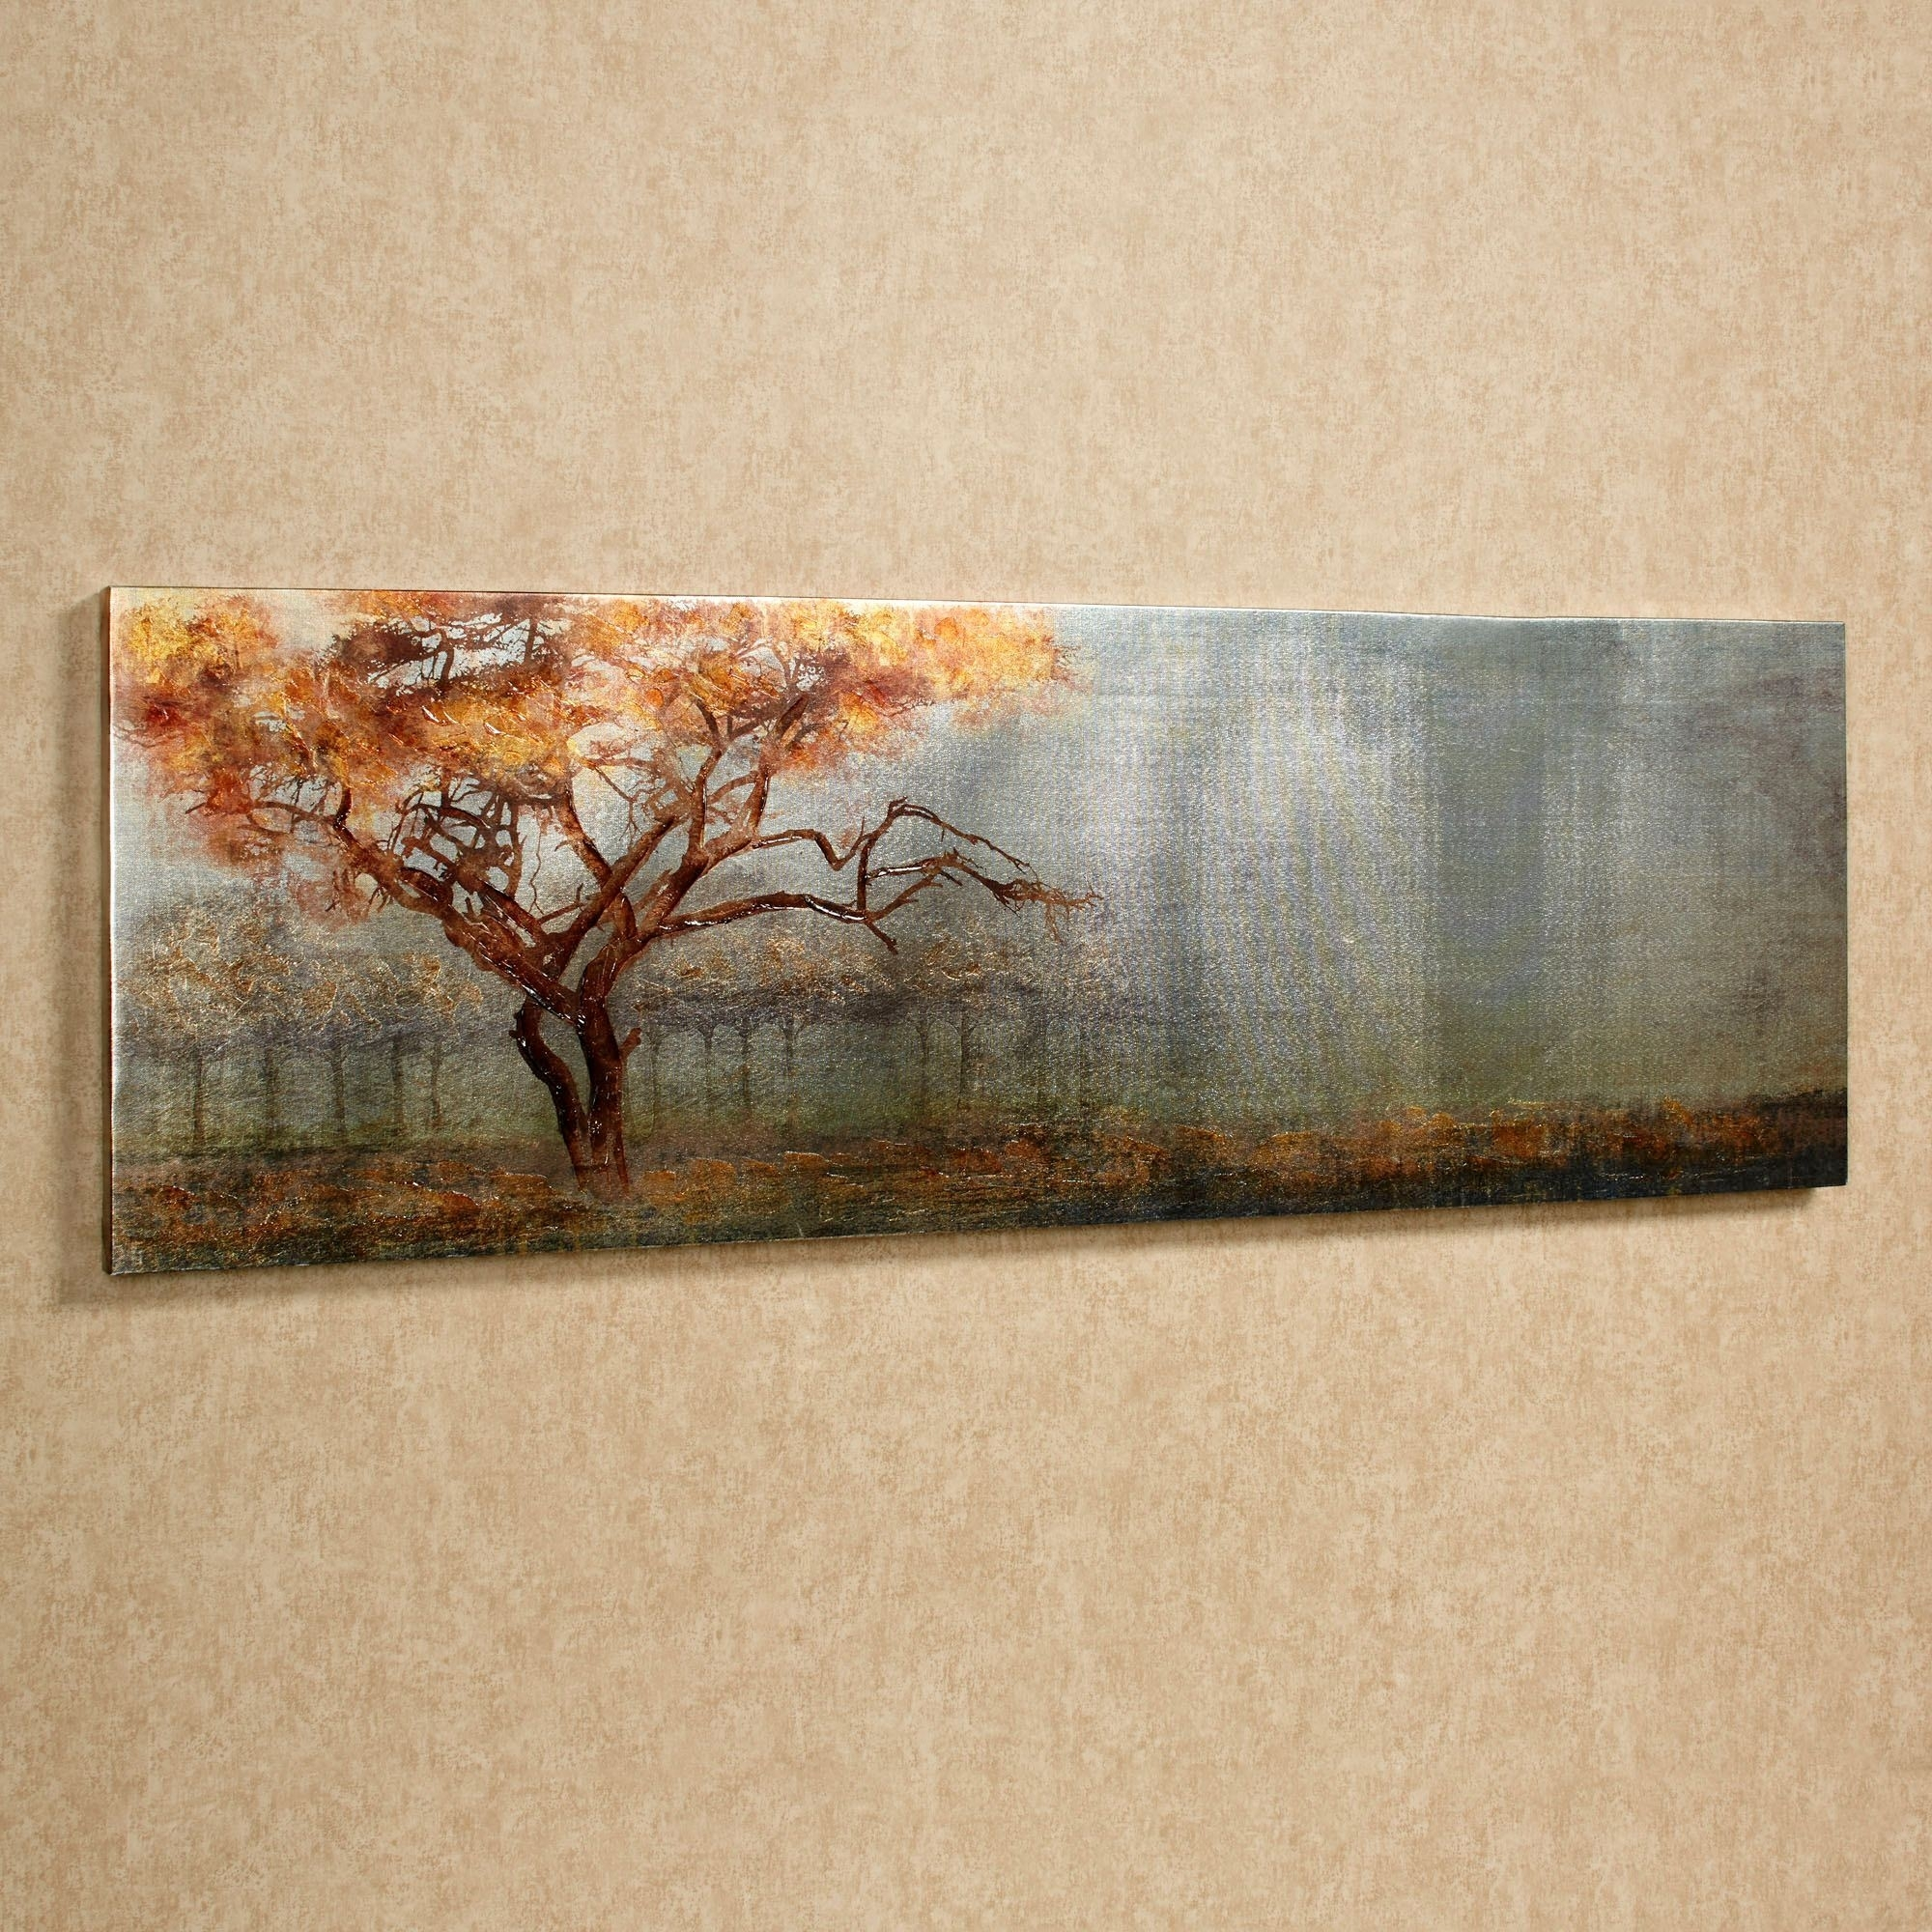 Serengeti Tree Canvas Wall Art Intended For 2018 Canvas Wall Art Of Trees (View 2 of 15)